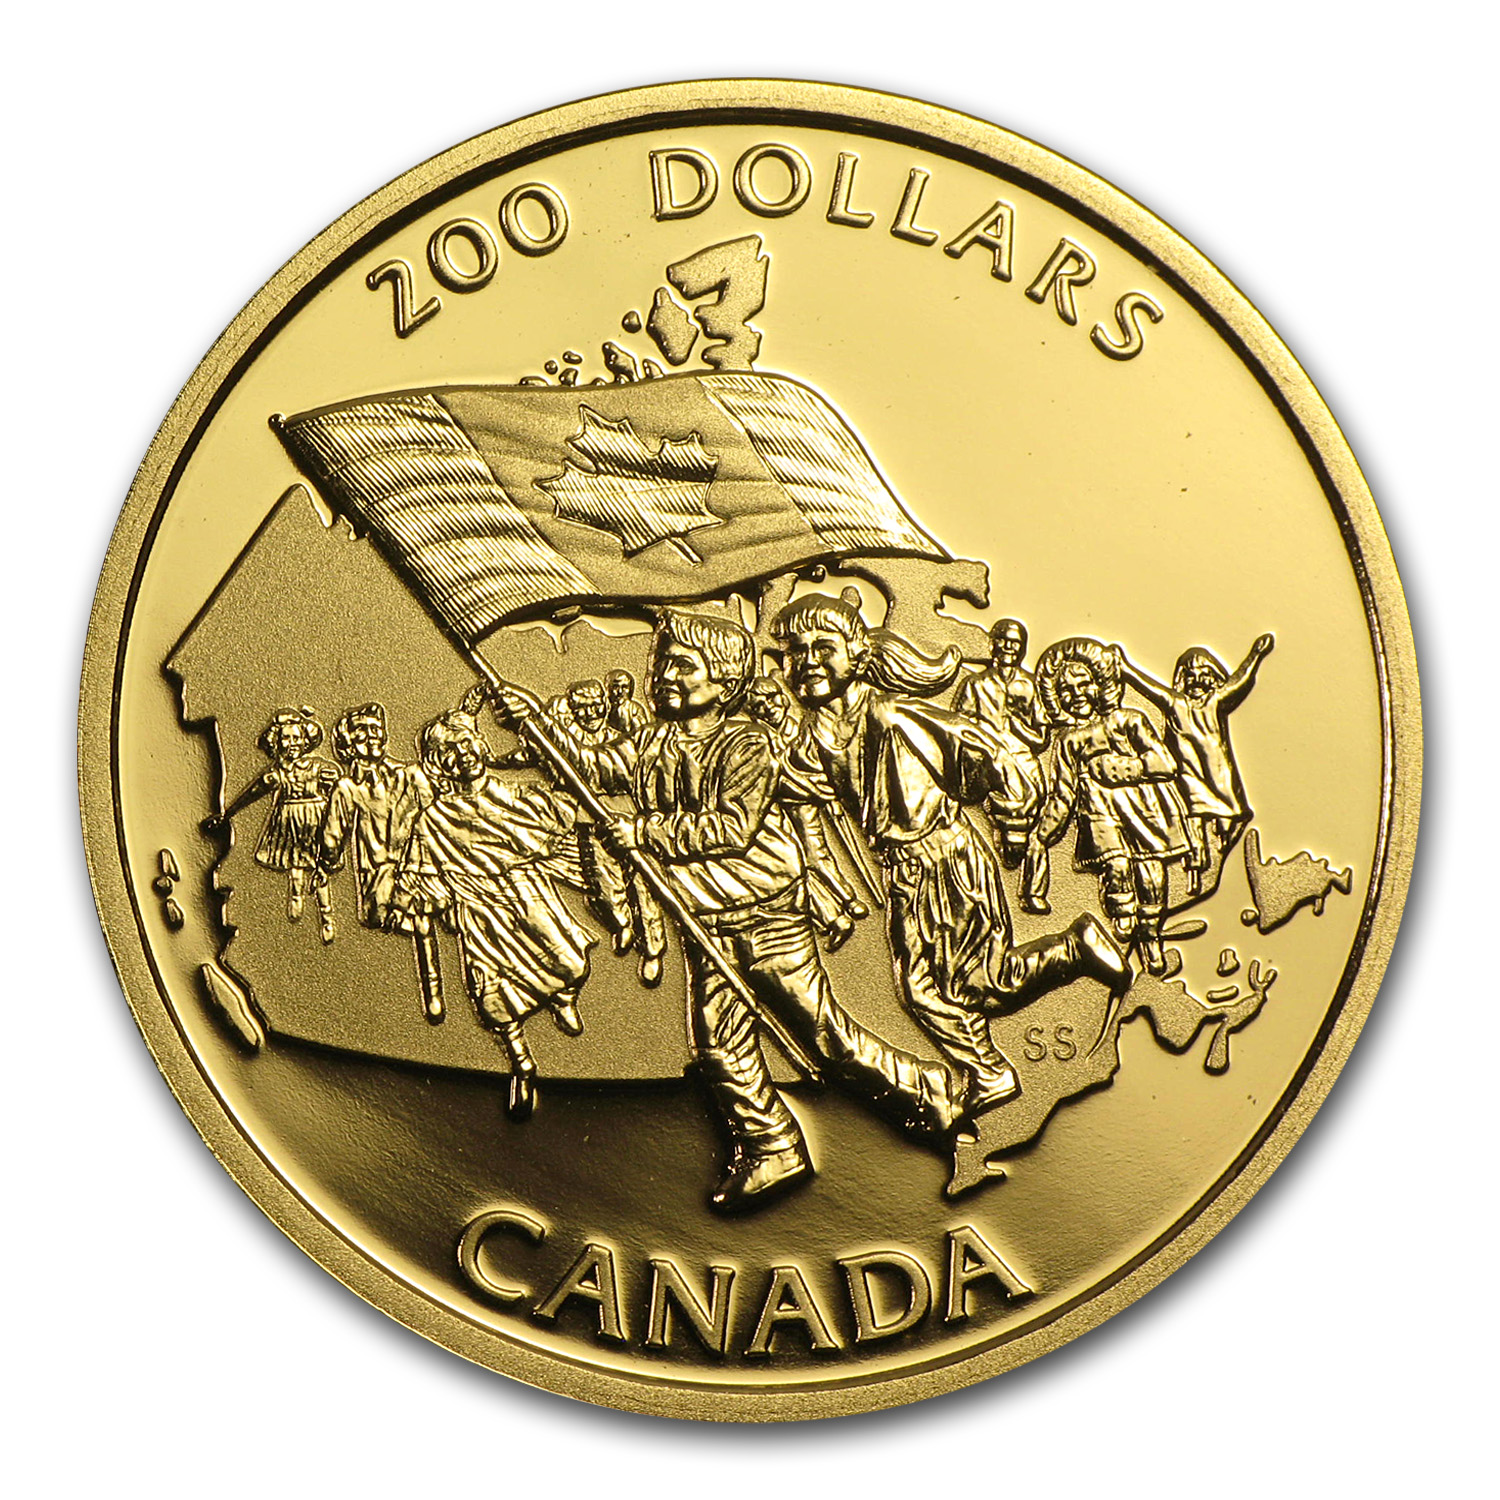 1990 1/2 oz Gold Canadian $200 Proof - Canadian Flag